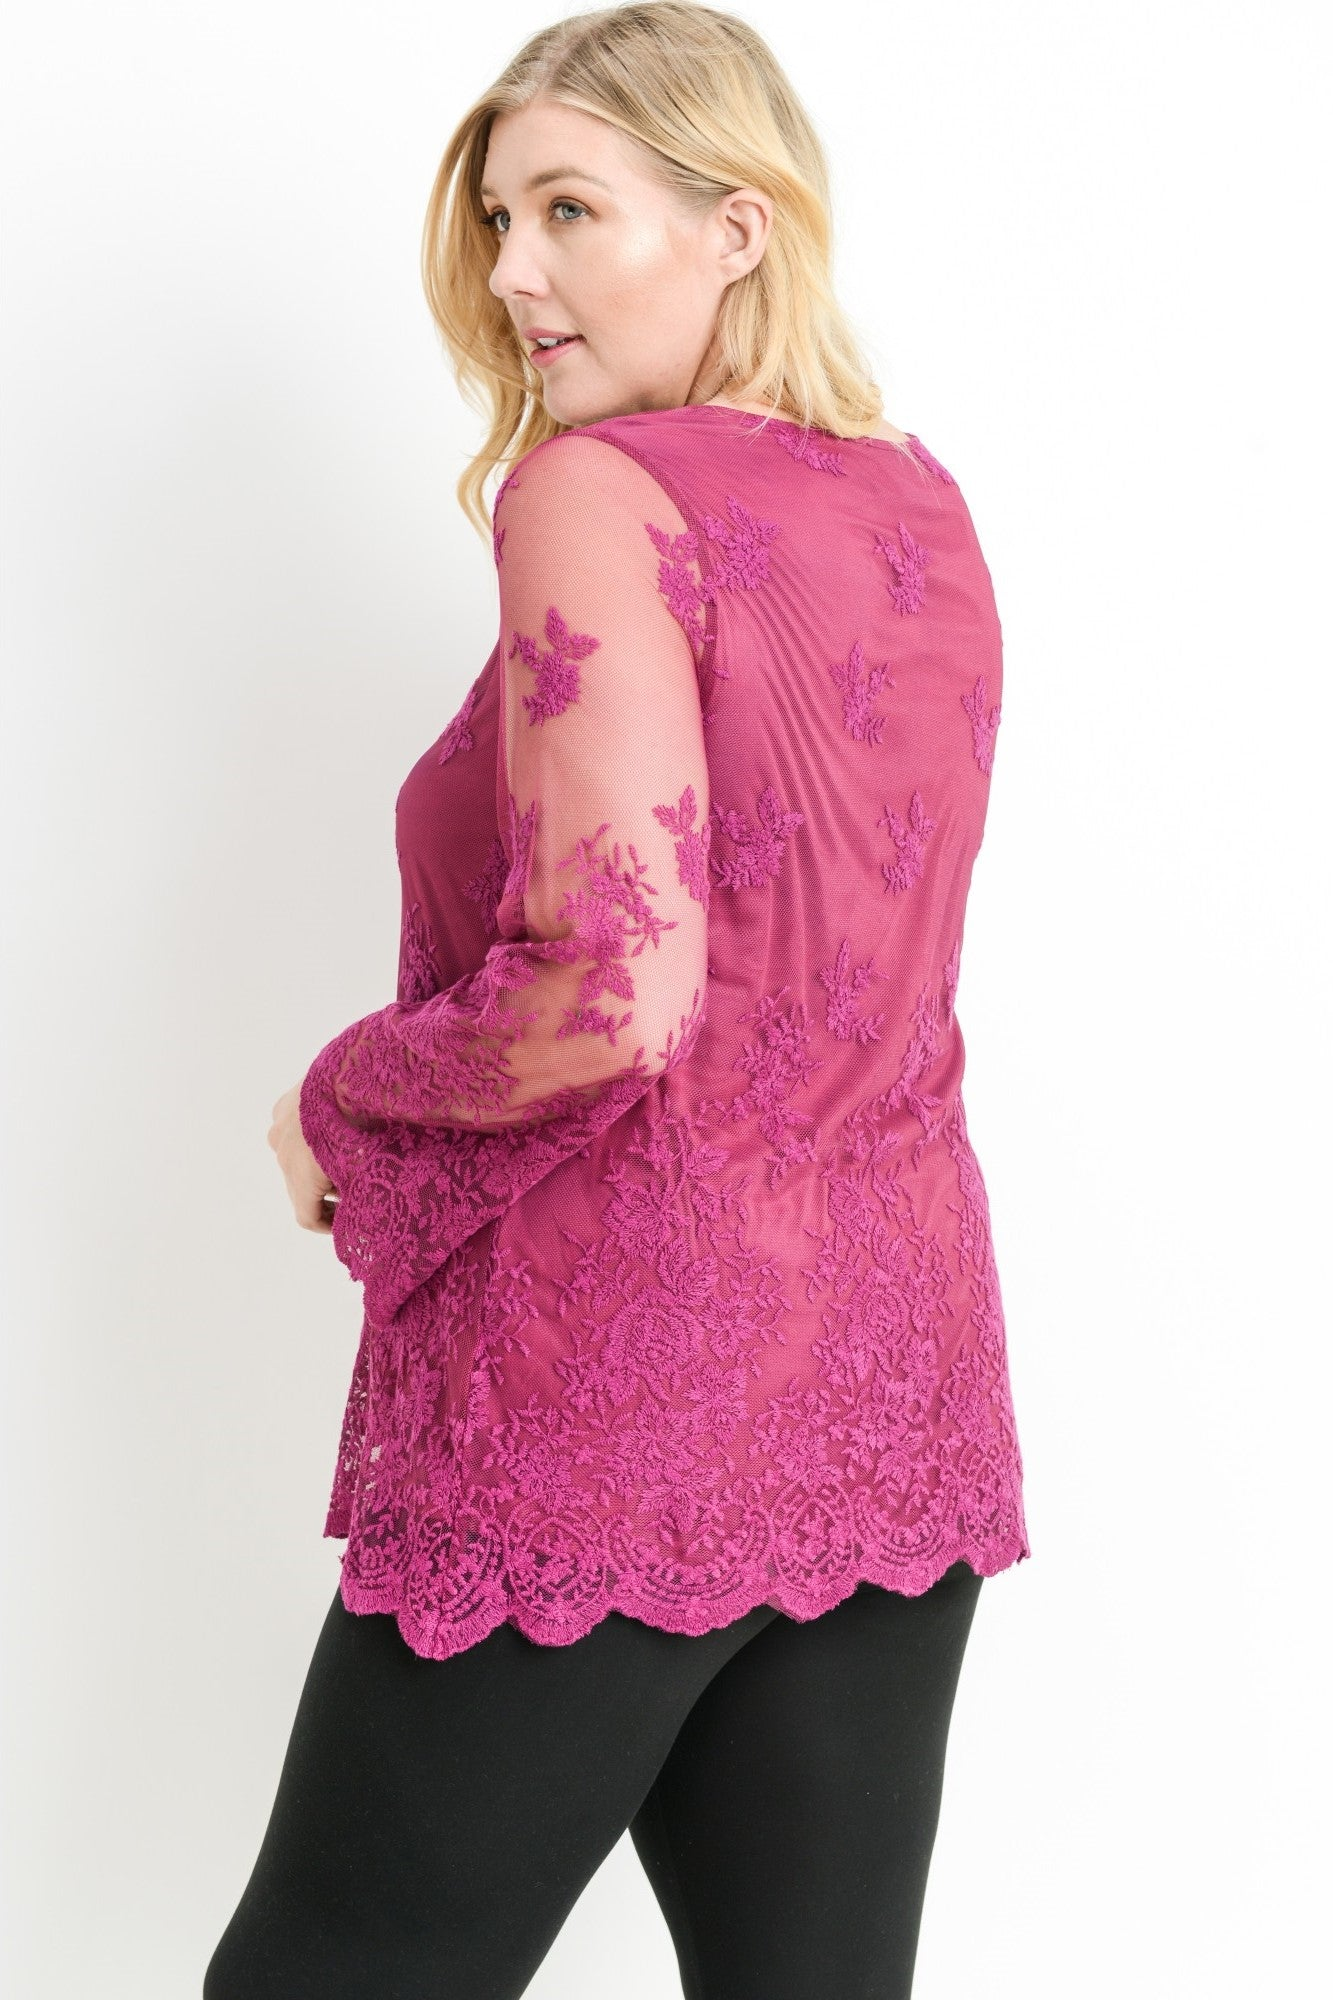 Back view young woman wearing berry plus size tunic top